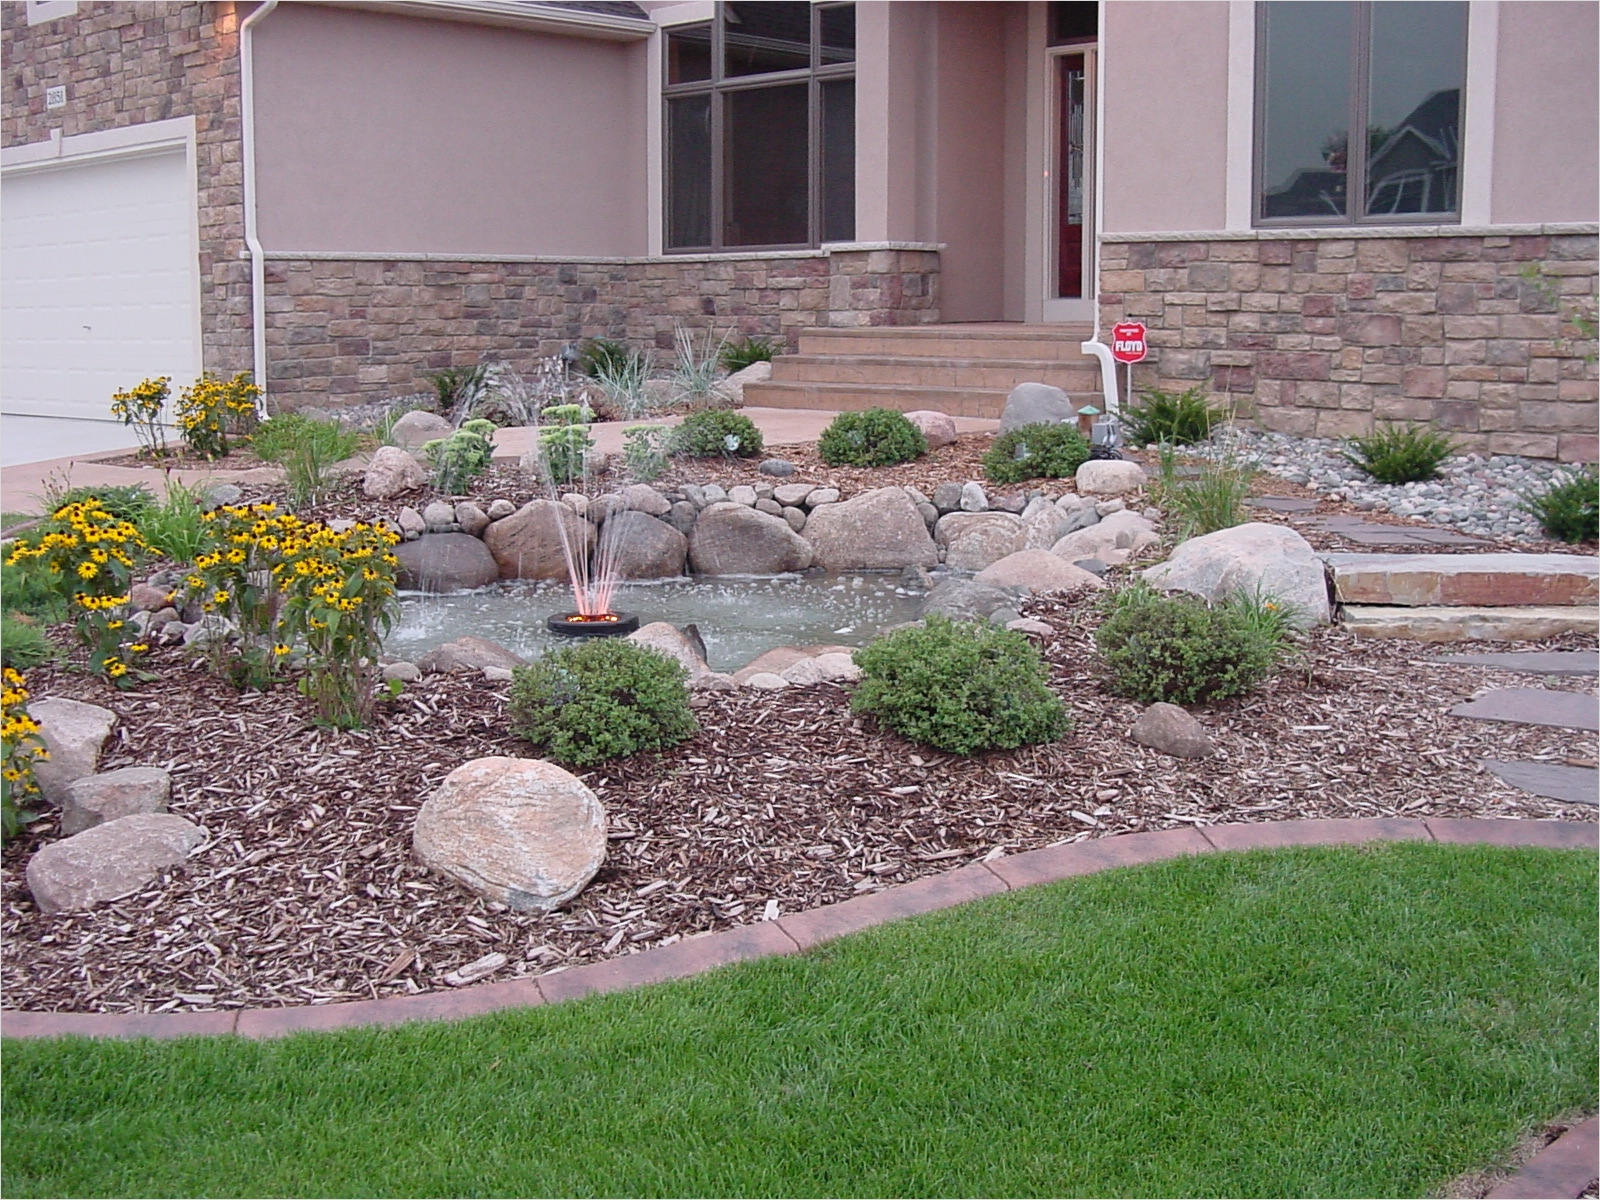 35 Perfect Front Yard Landscaping Ideas with Rocks 35